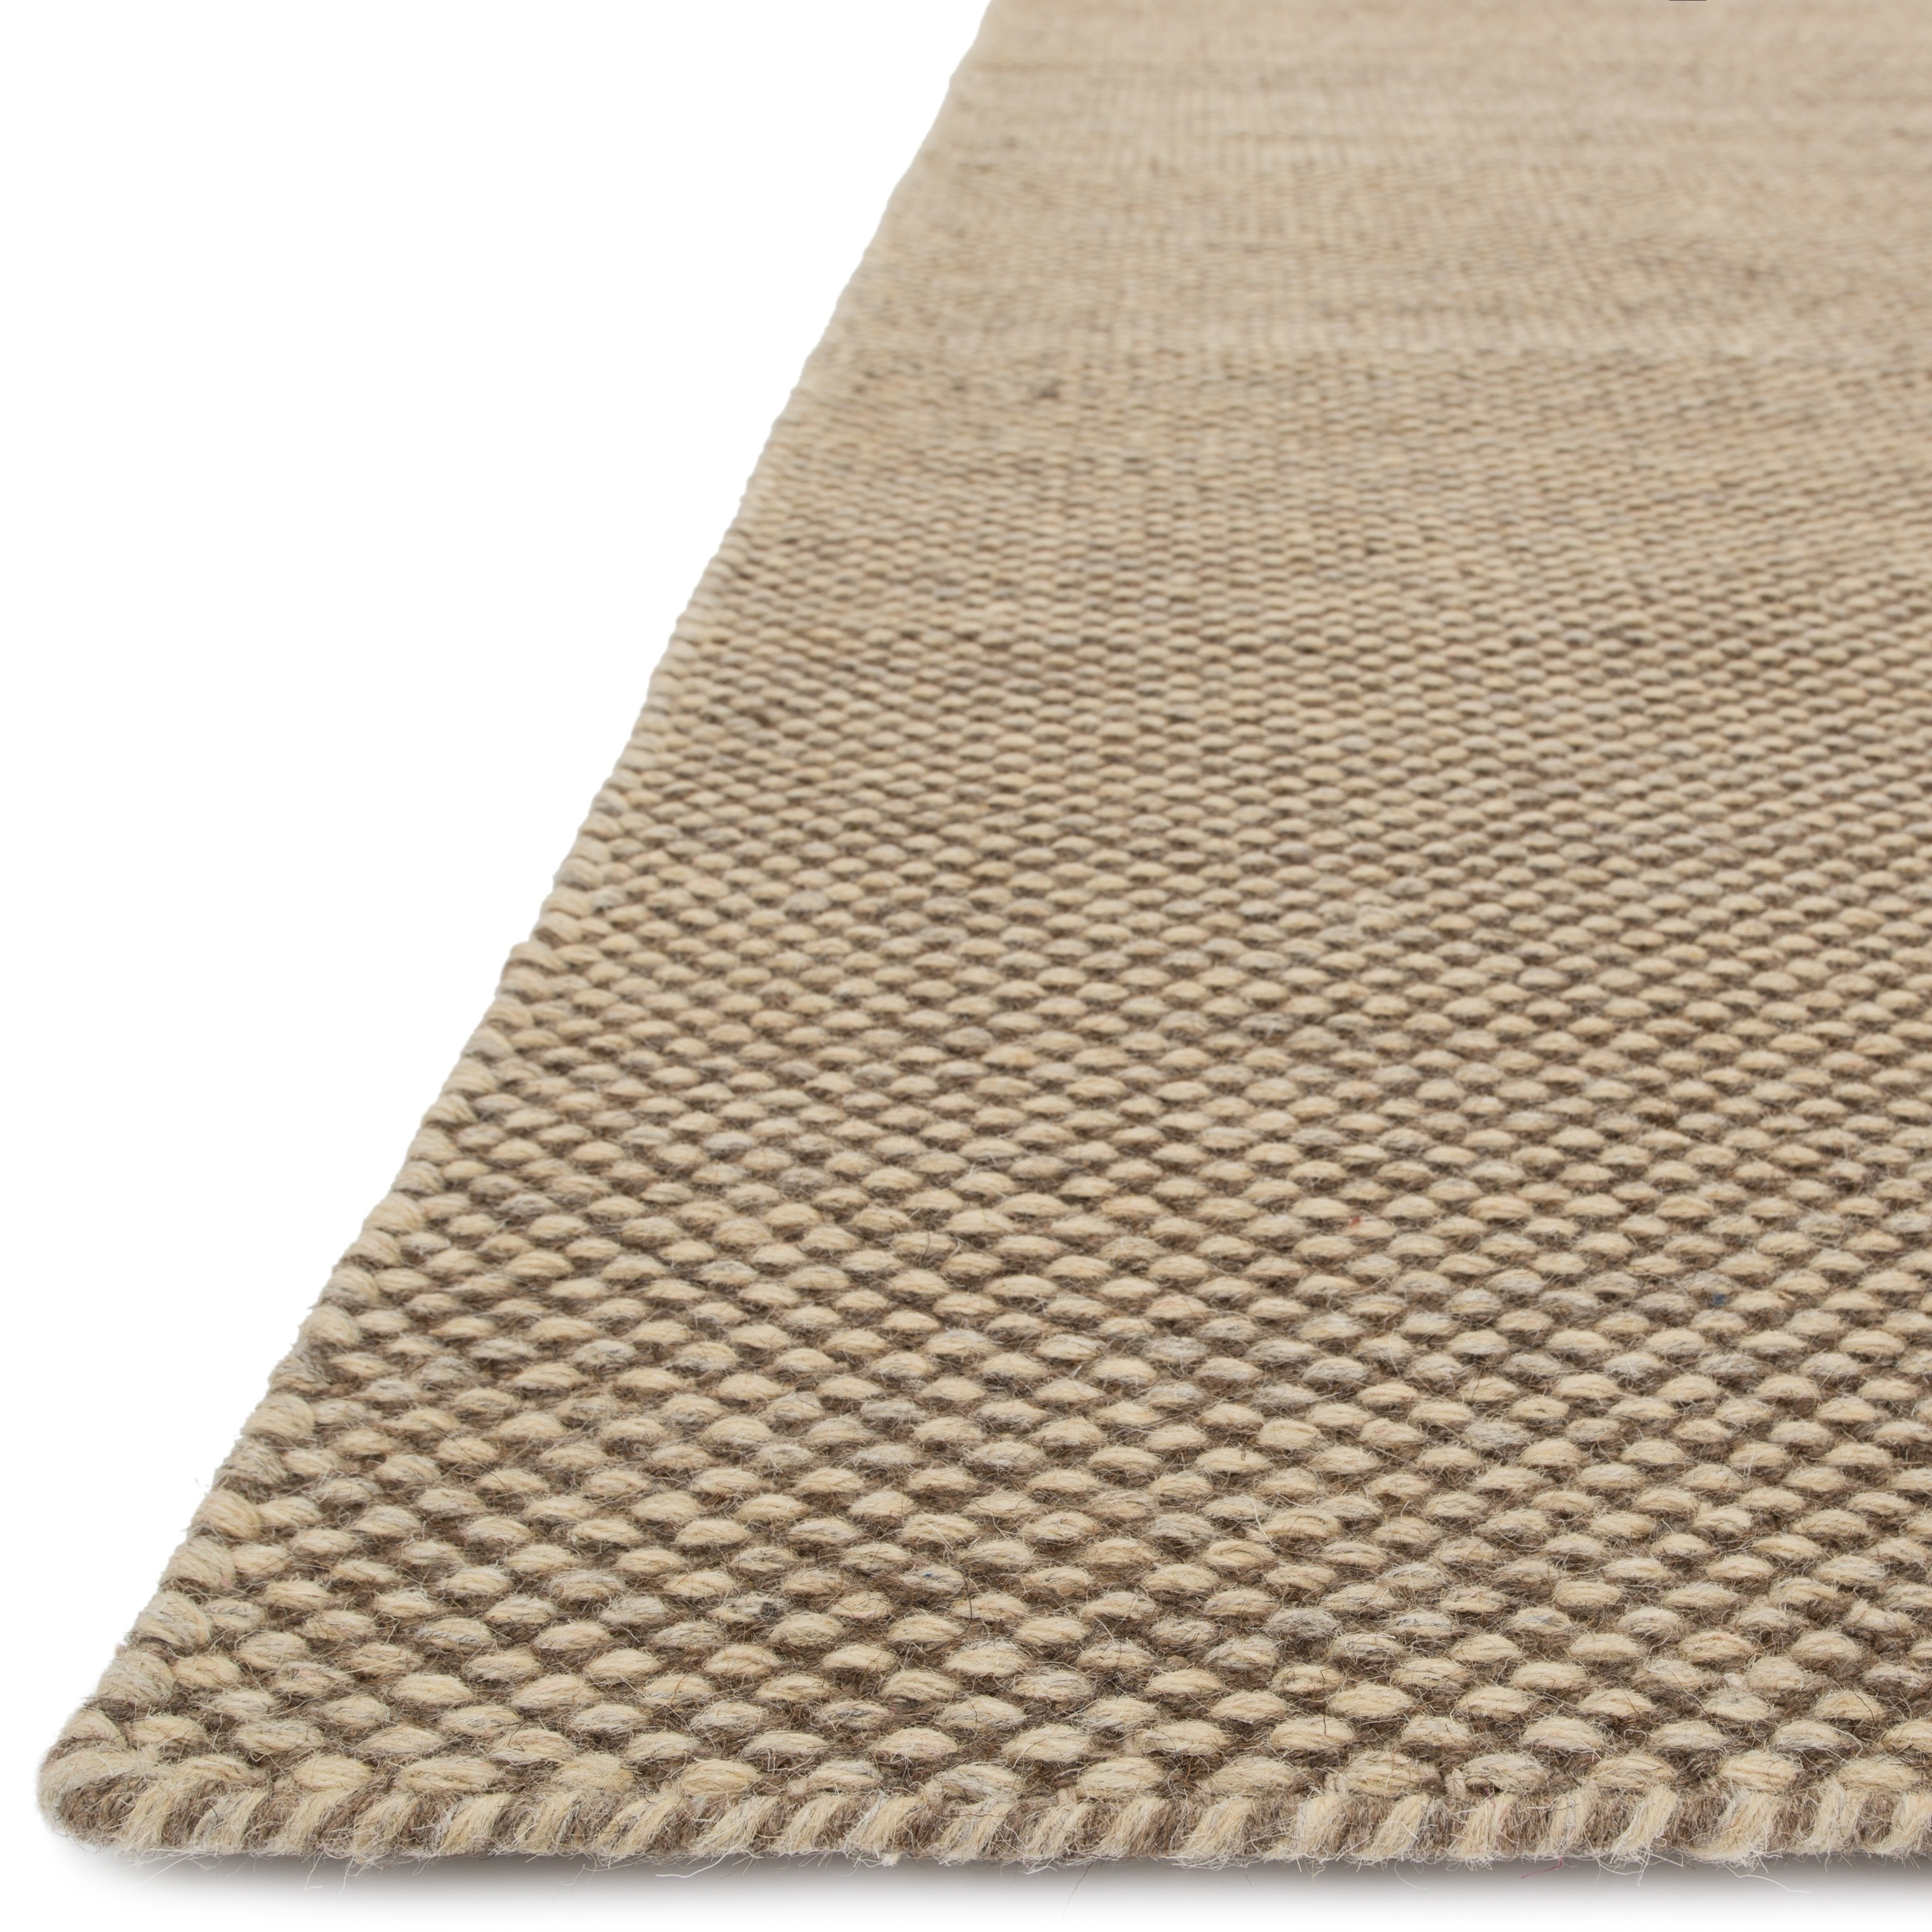 Hand Woven Cape Cod Wool Cotton Rug